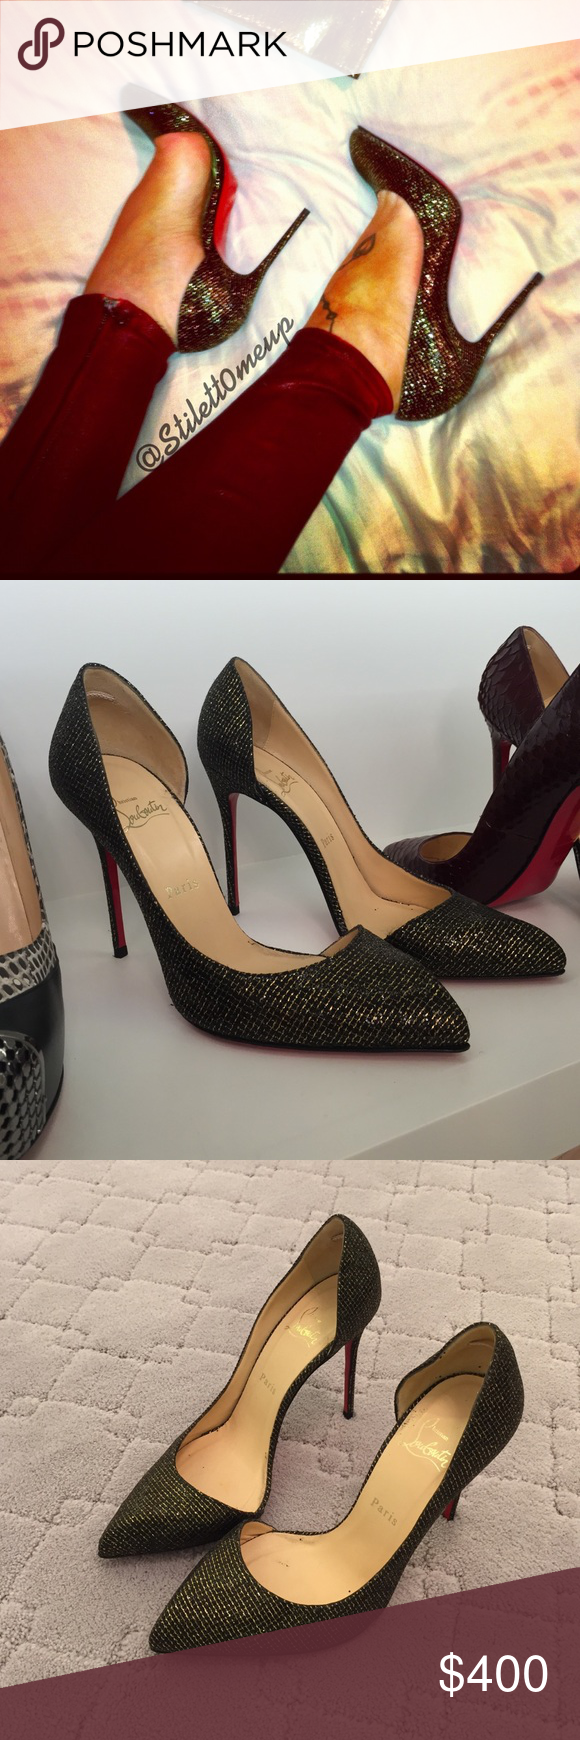 669fcb0db9da Christian louboutin sparkly heels 100mm Forgot the name of the style. Worn  once. Sparkly black sequin with gold threading. Size 39 Christian Louboutin  Shoes ...